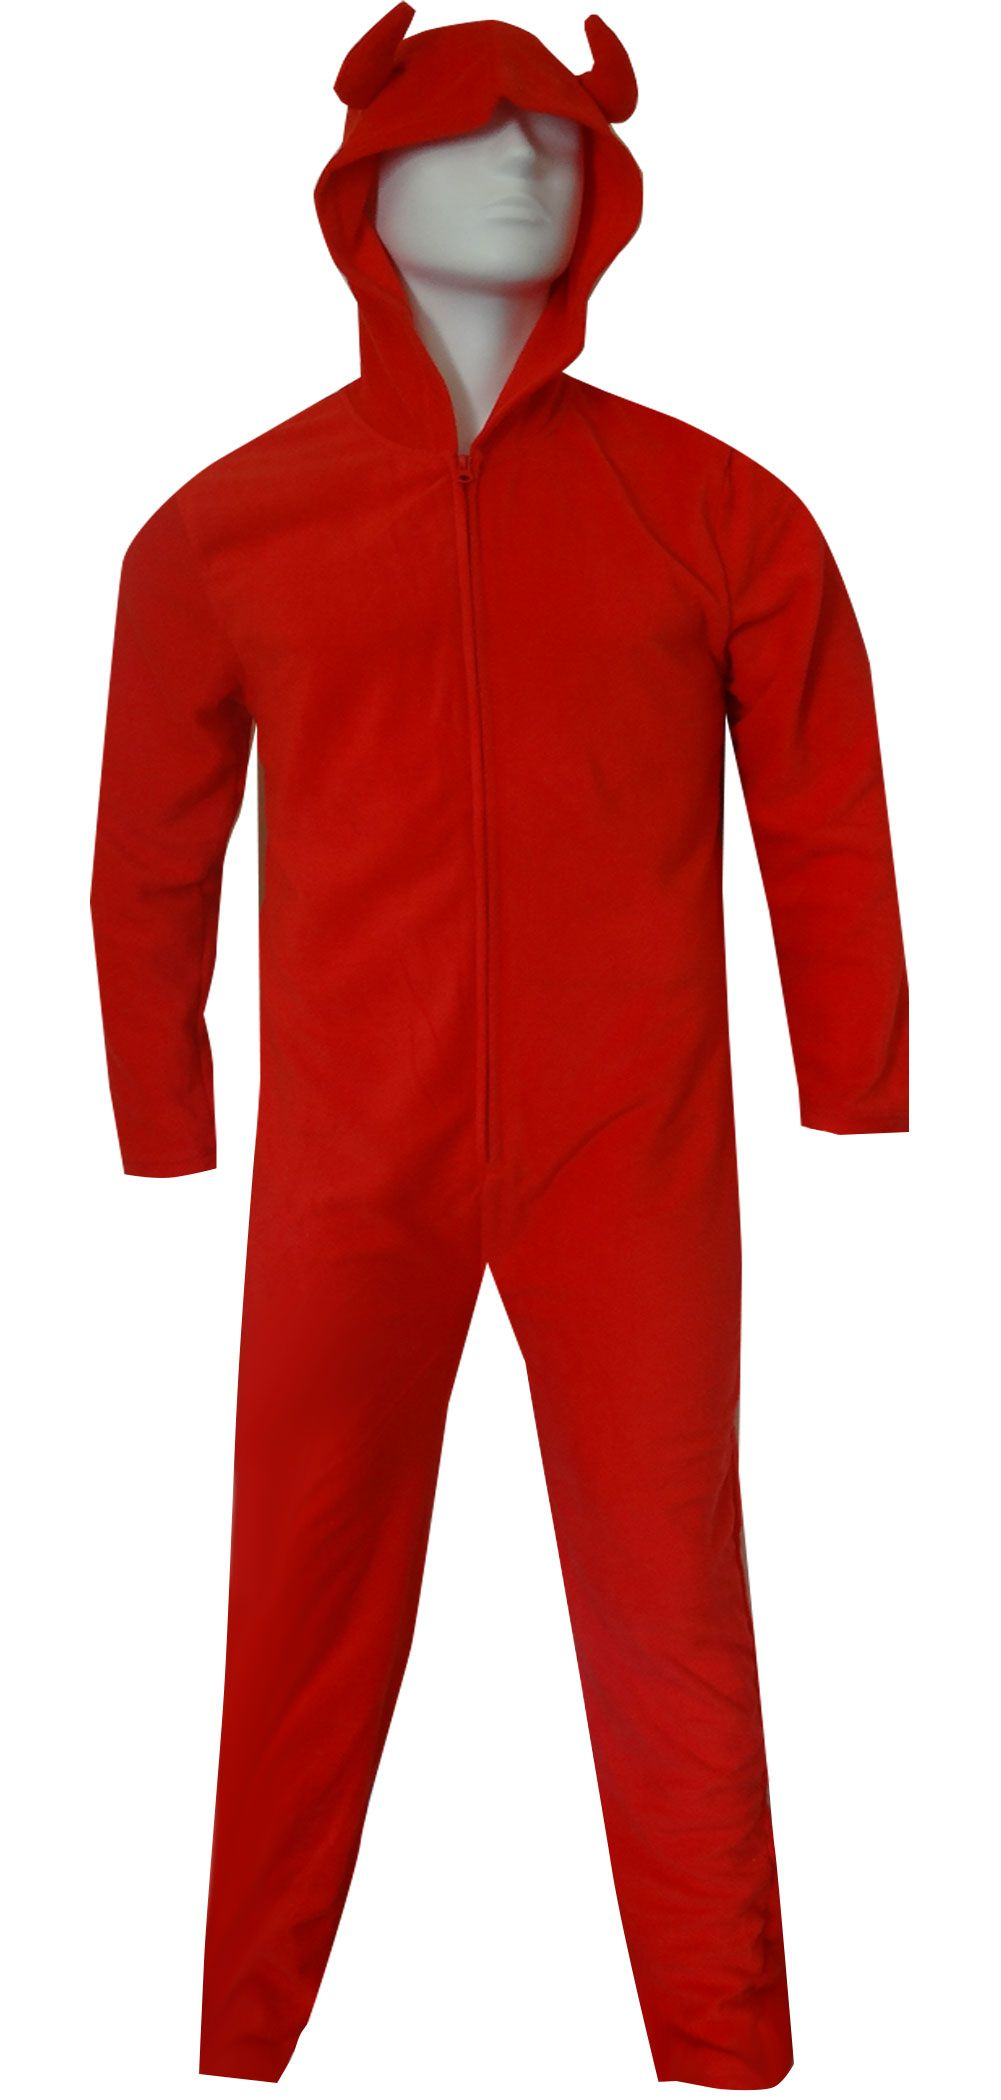 WebUndies.com Unisex Hooded Red Devil Onesie Pajama 014c9c444